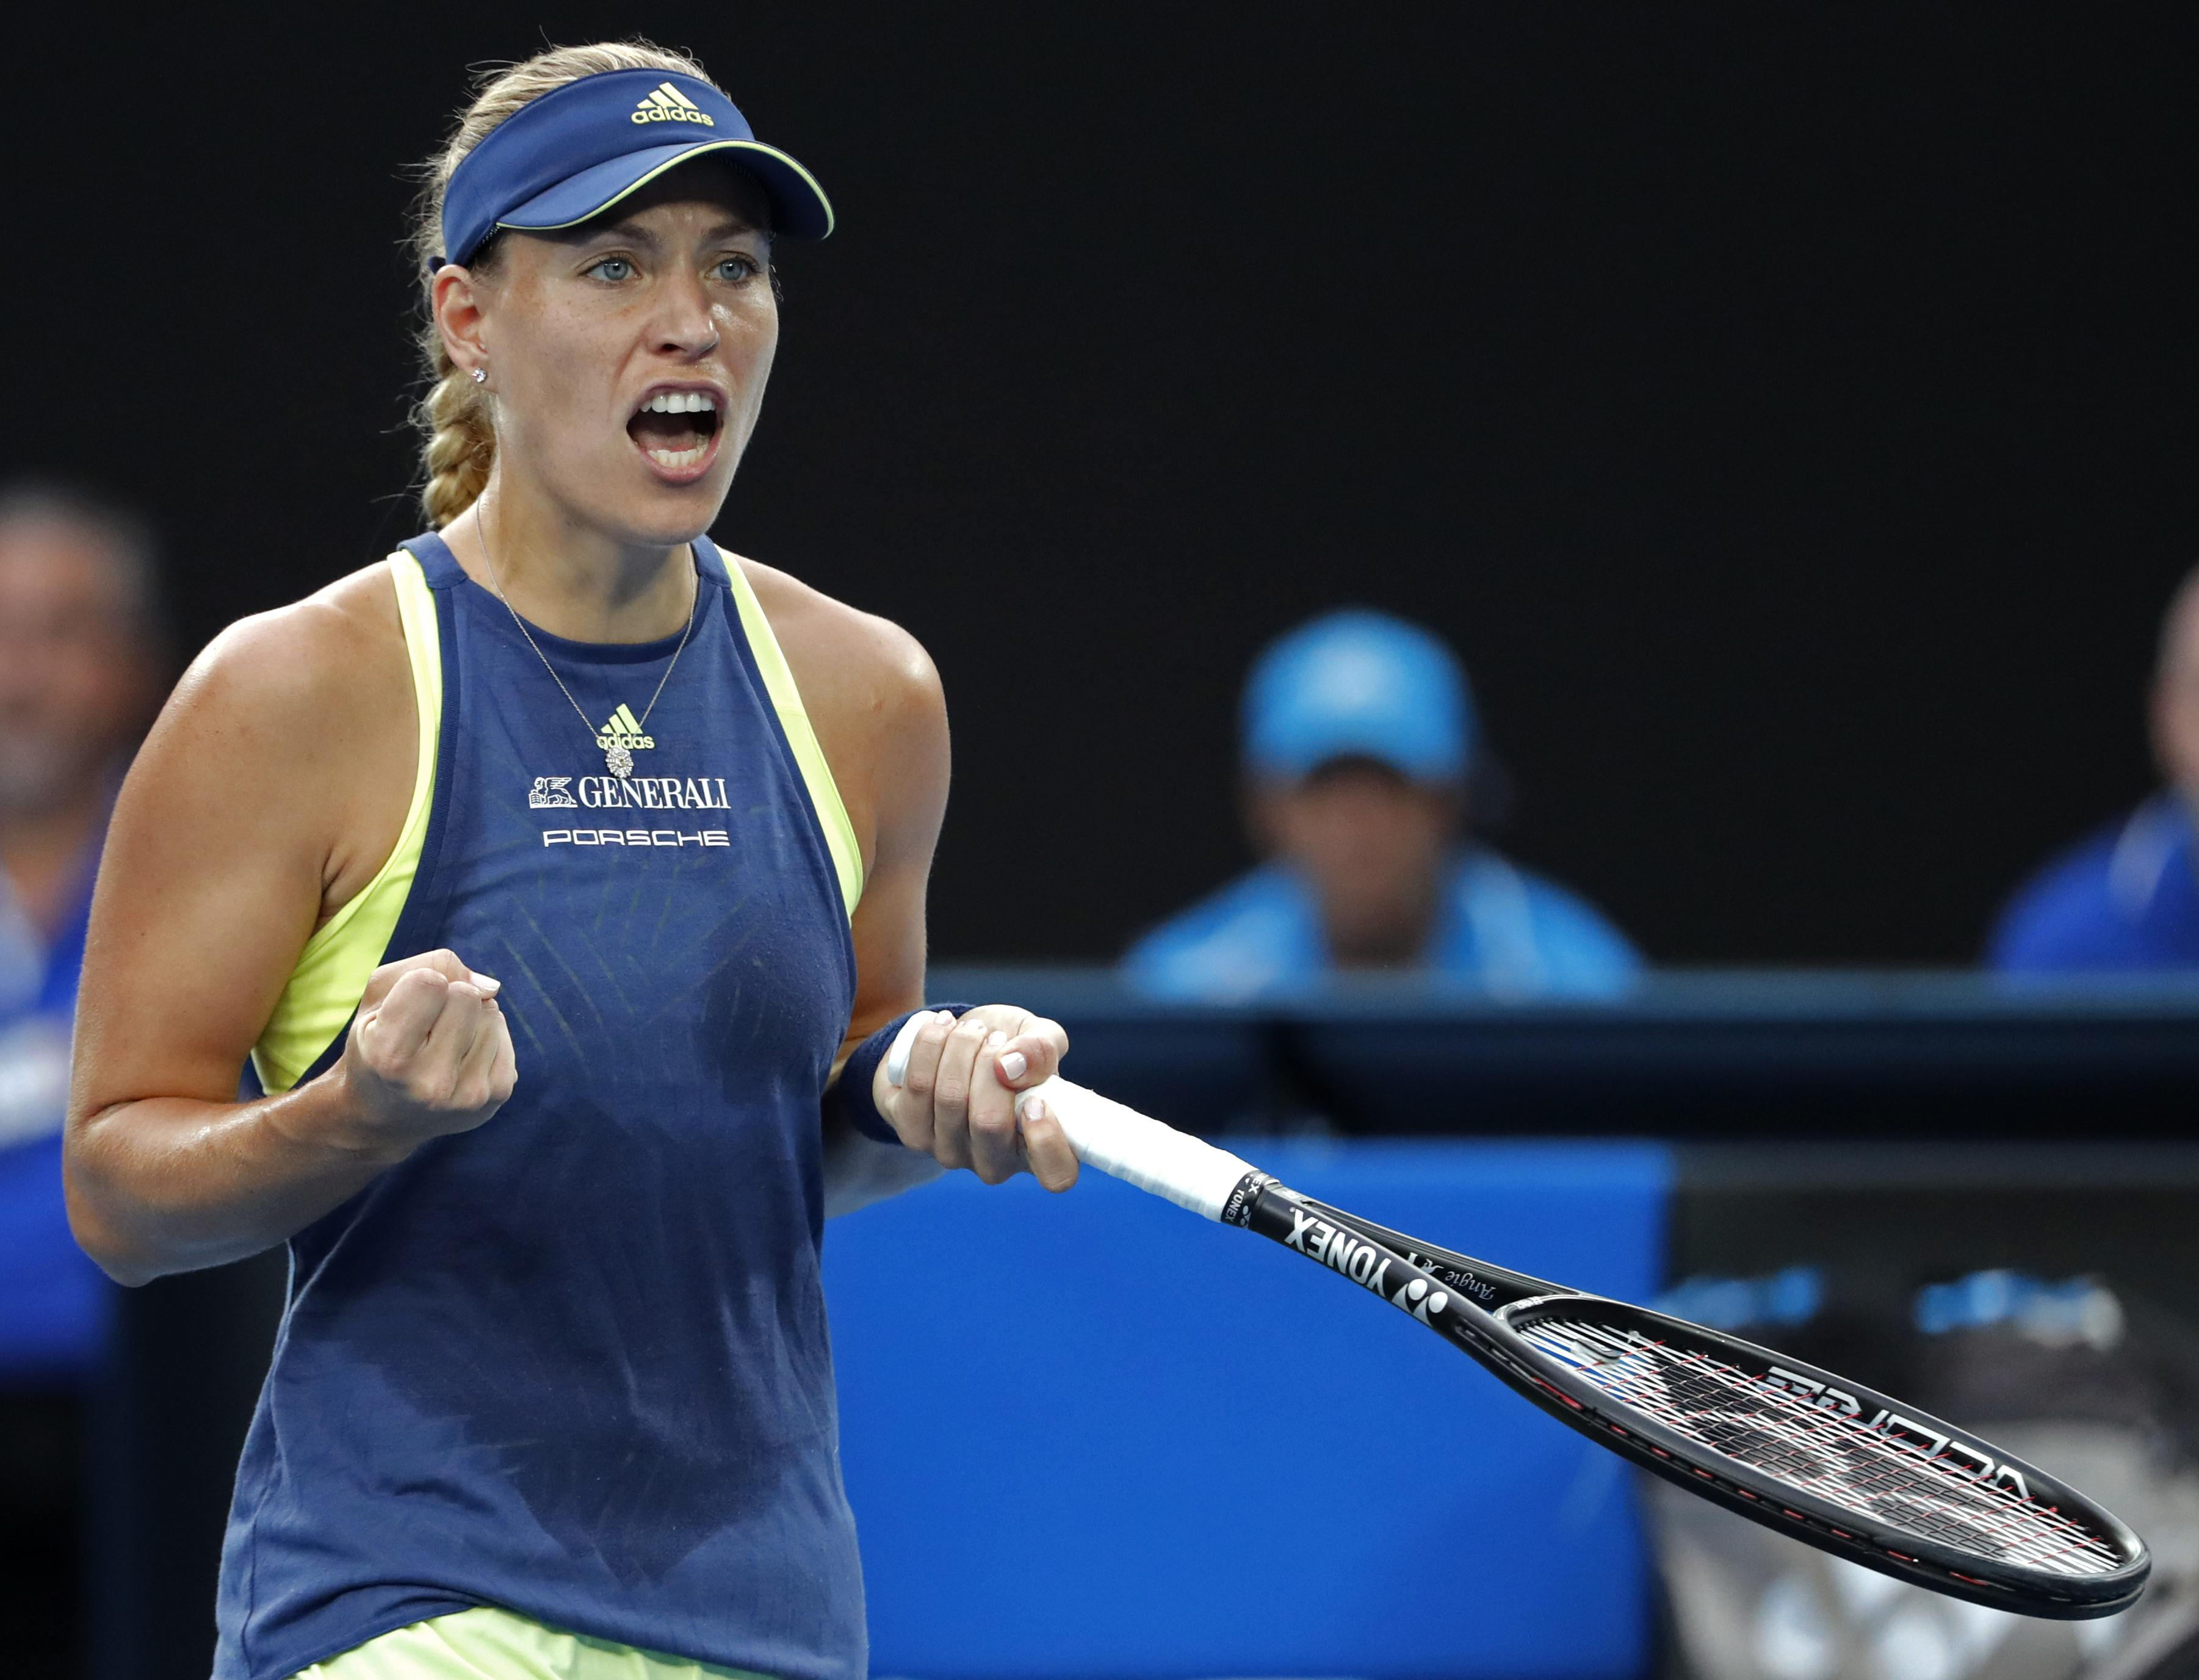 Angelique Kerber continued her great run by thrashing Madison Keys to reach the semi finals